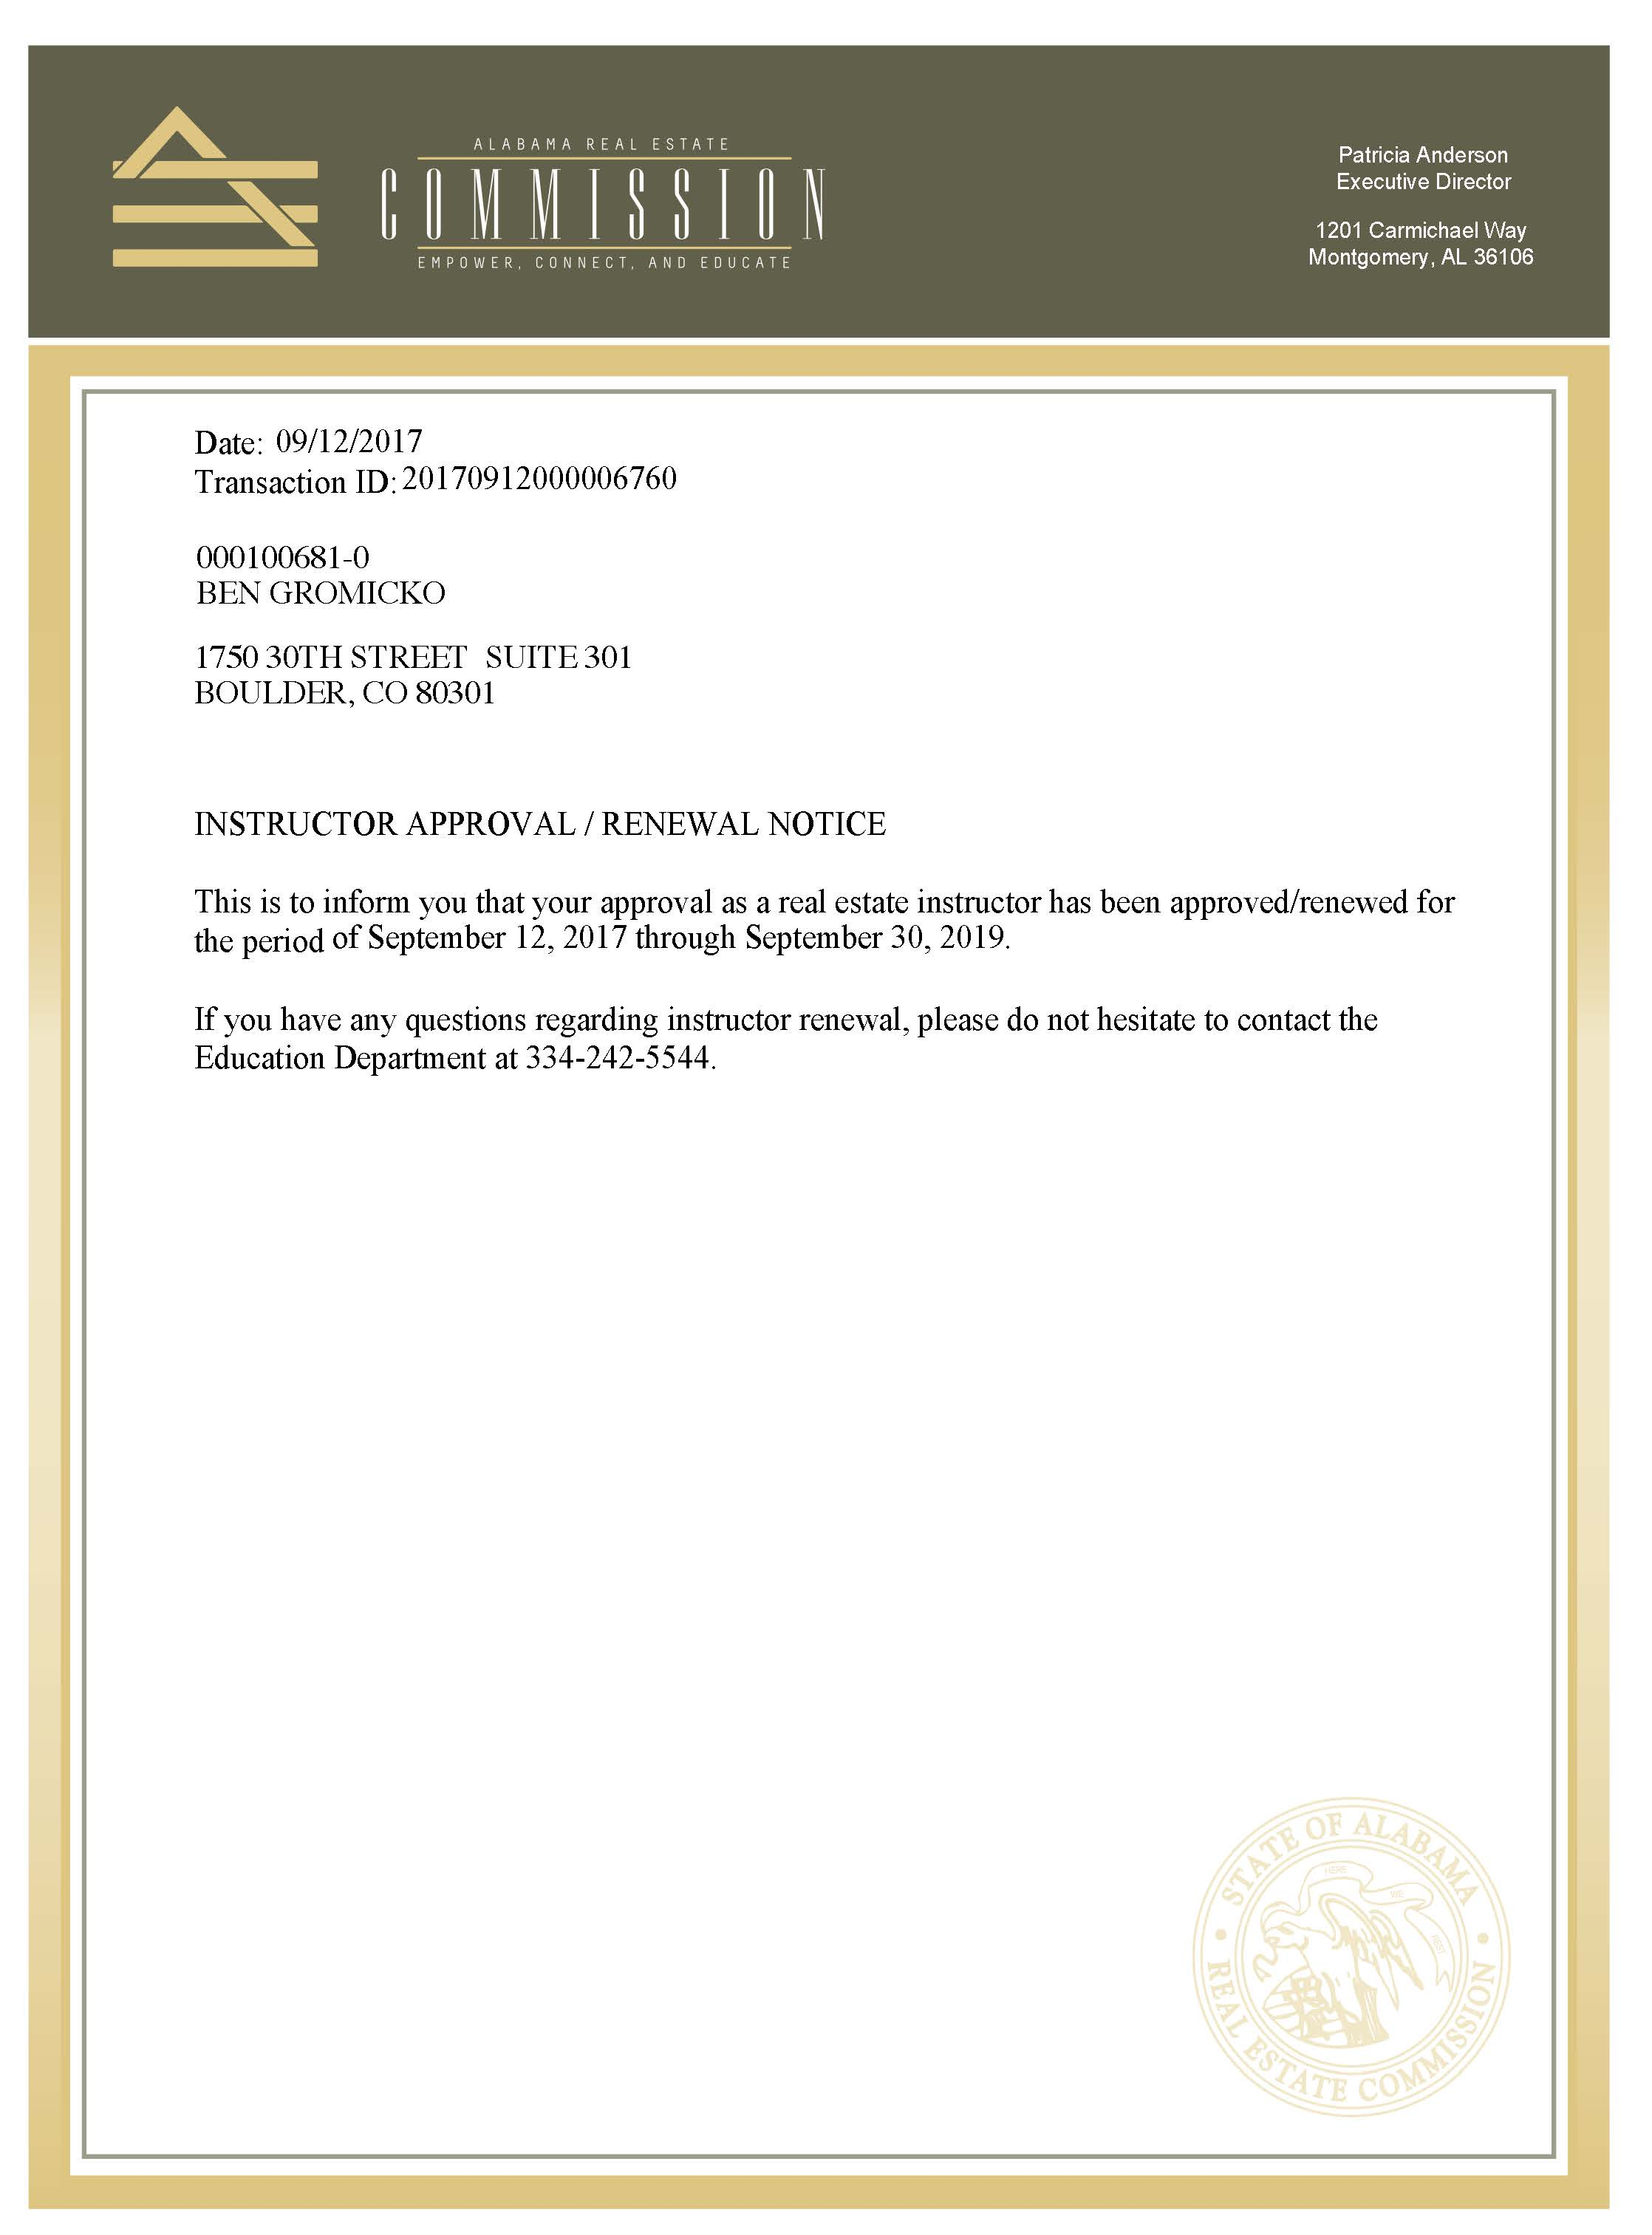 View The Administrator Approval Letter